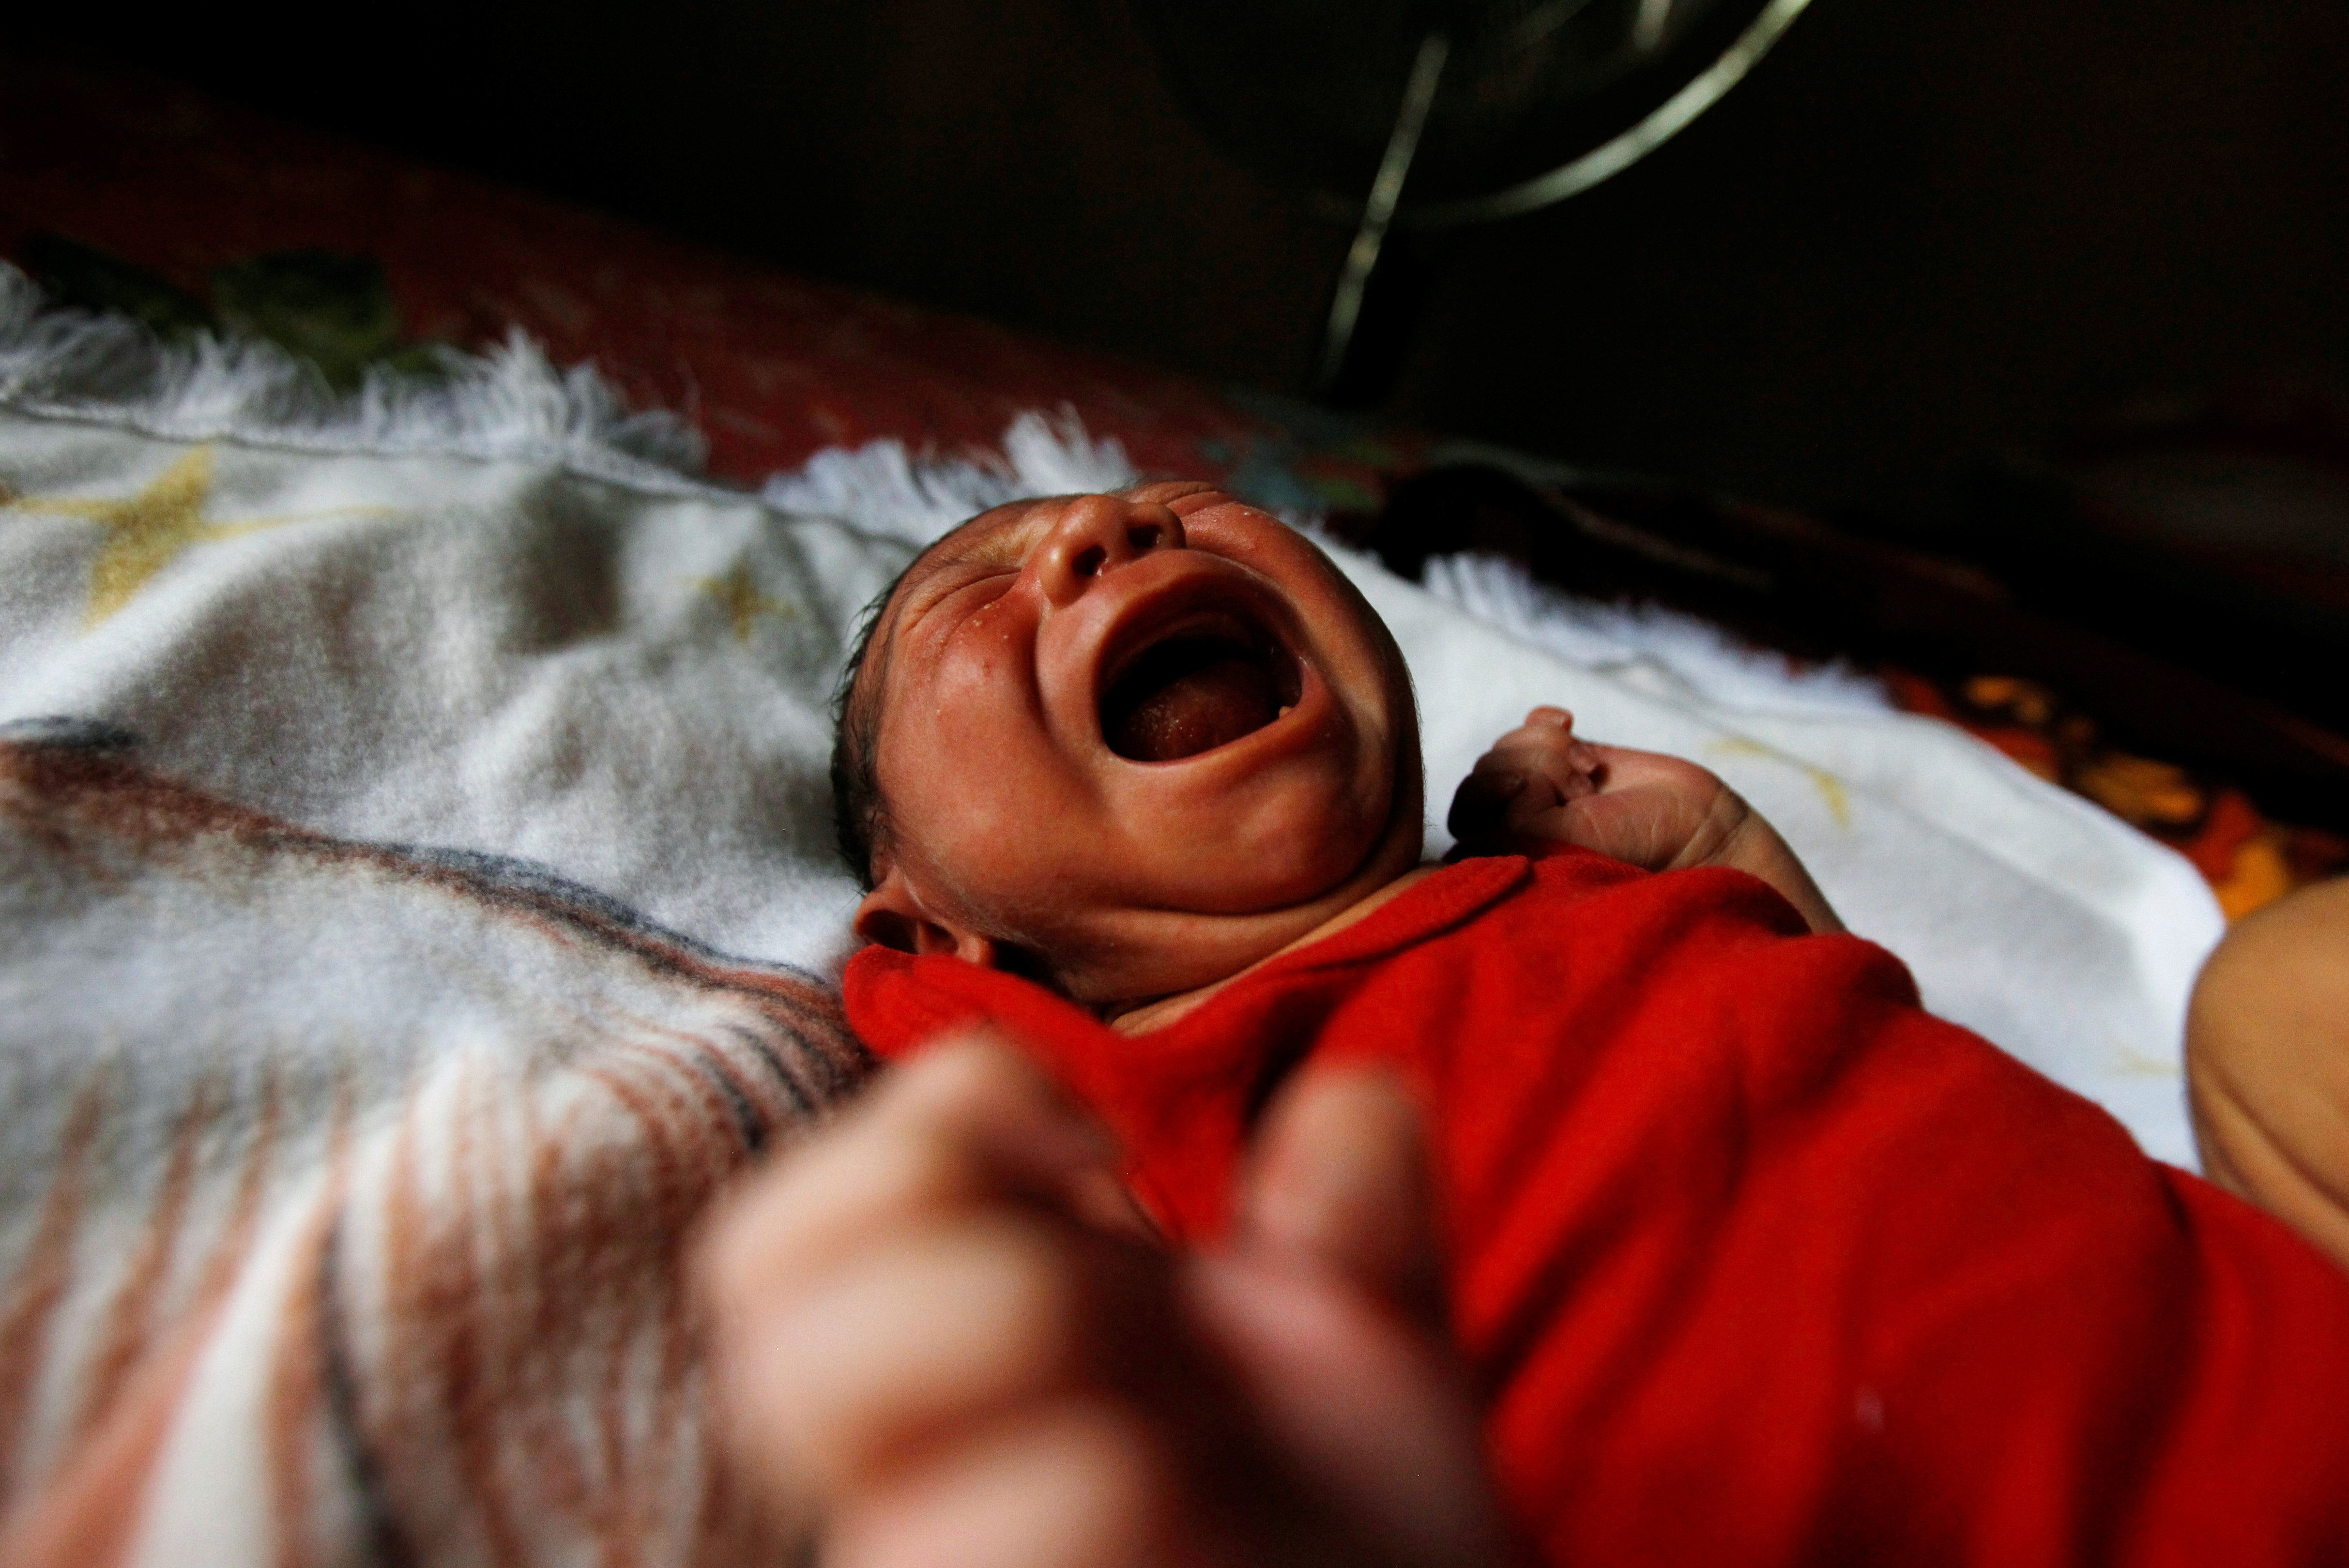 Eight-day old baby Allan, who was born with microcephaly, cries at home in Choluteca, Honduras, July 29, 2016.